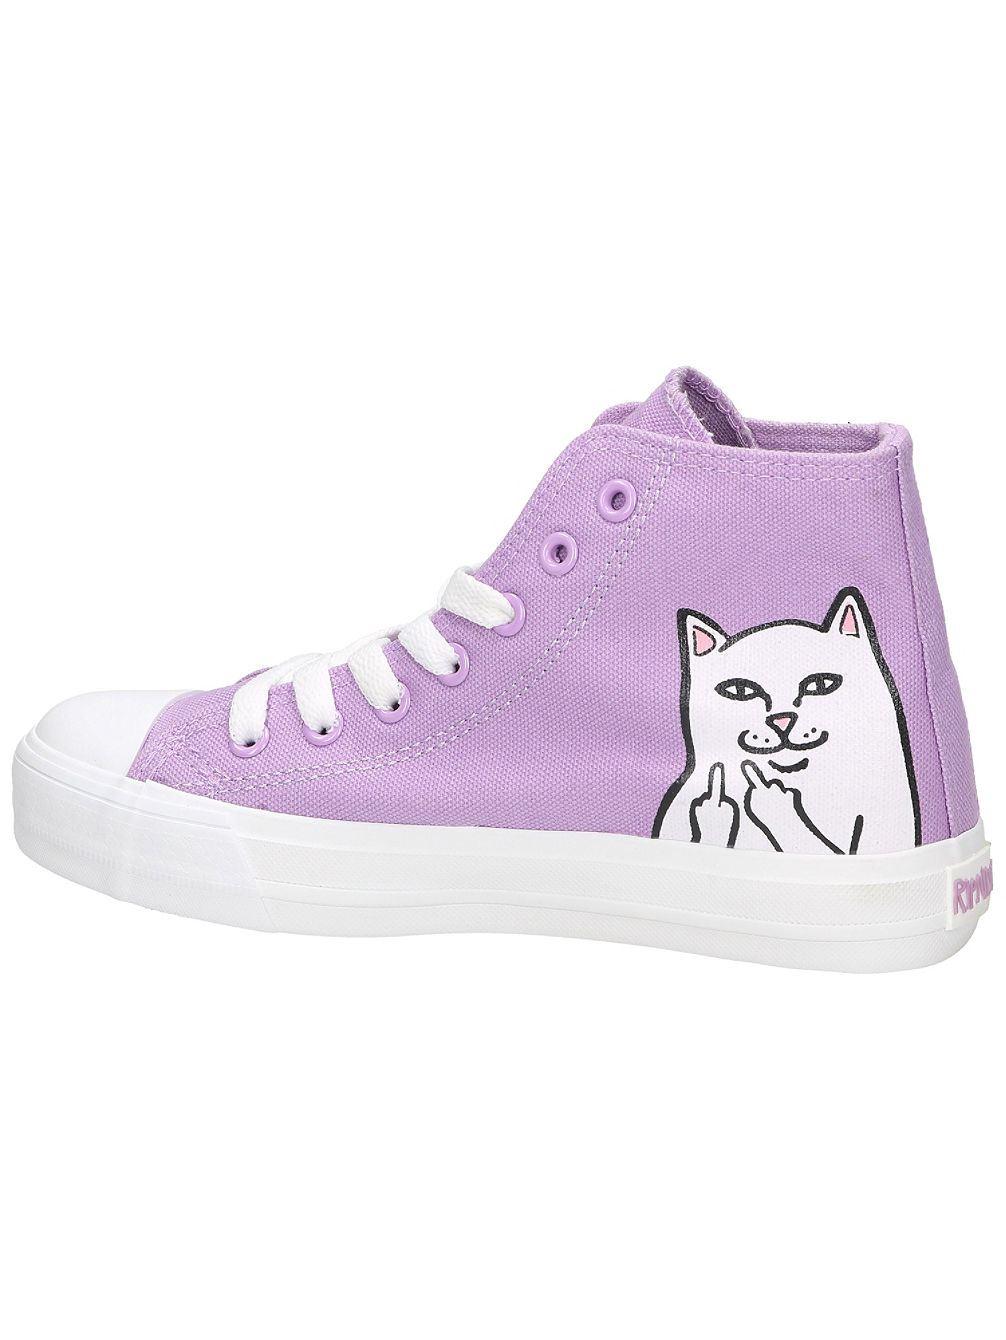 Nermal Highs Sneakers